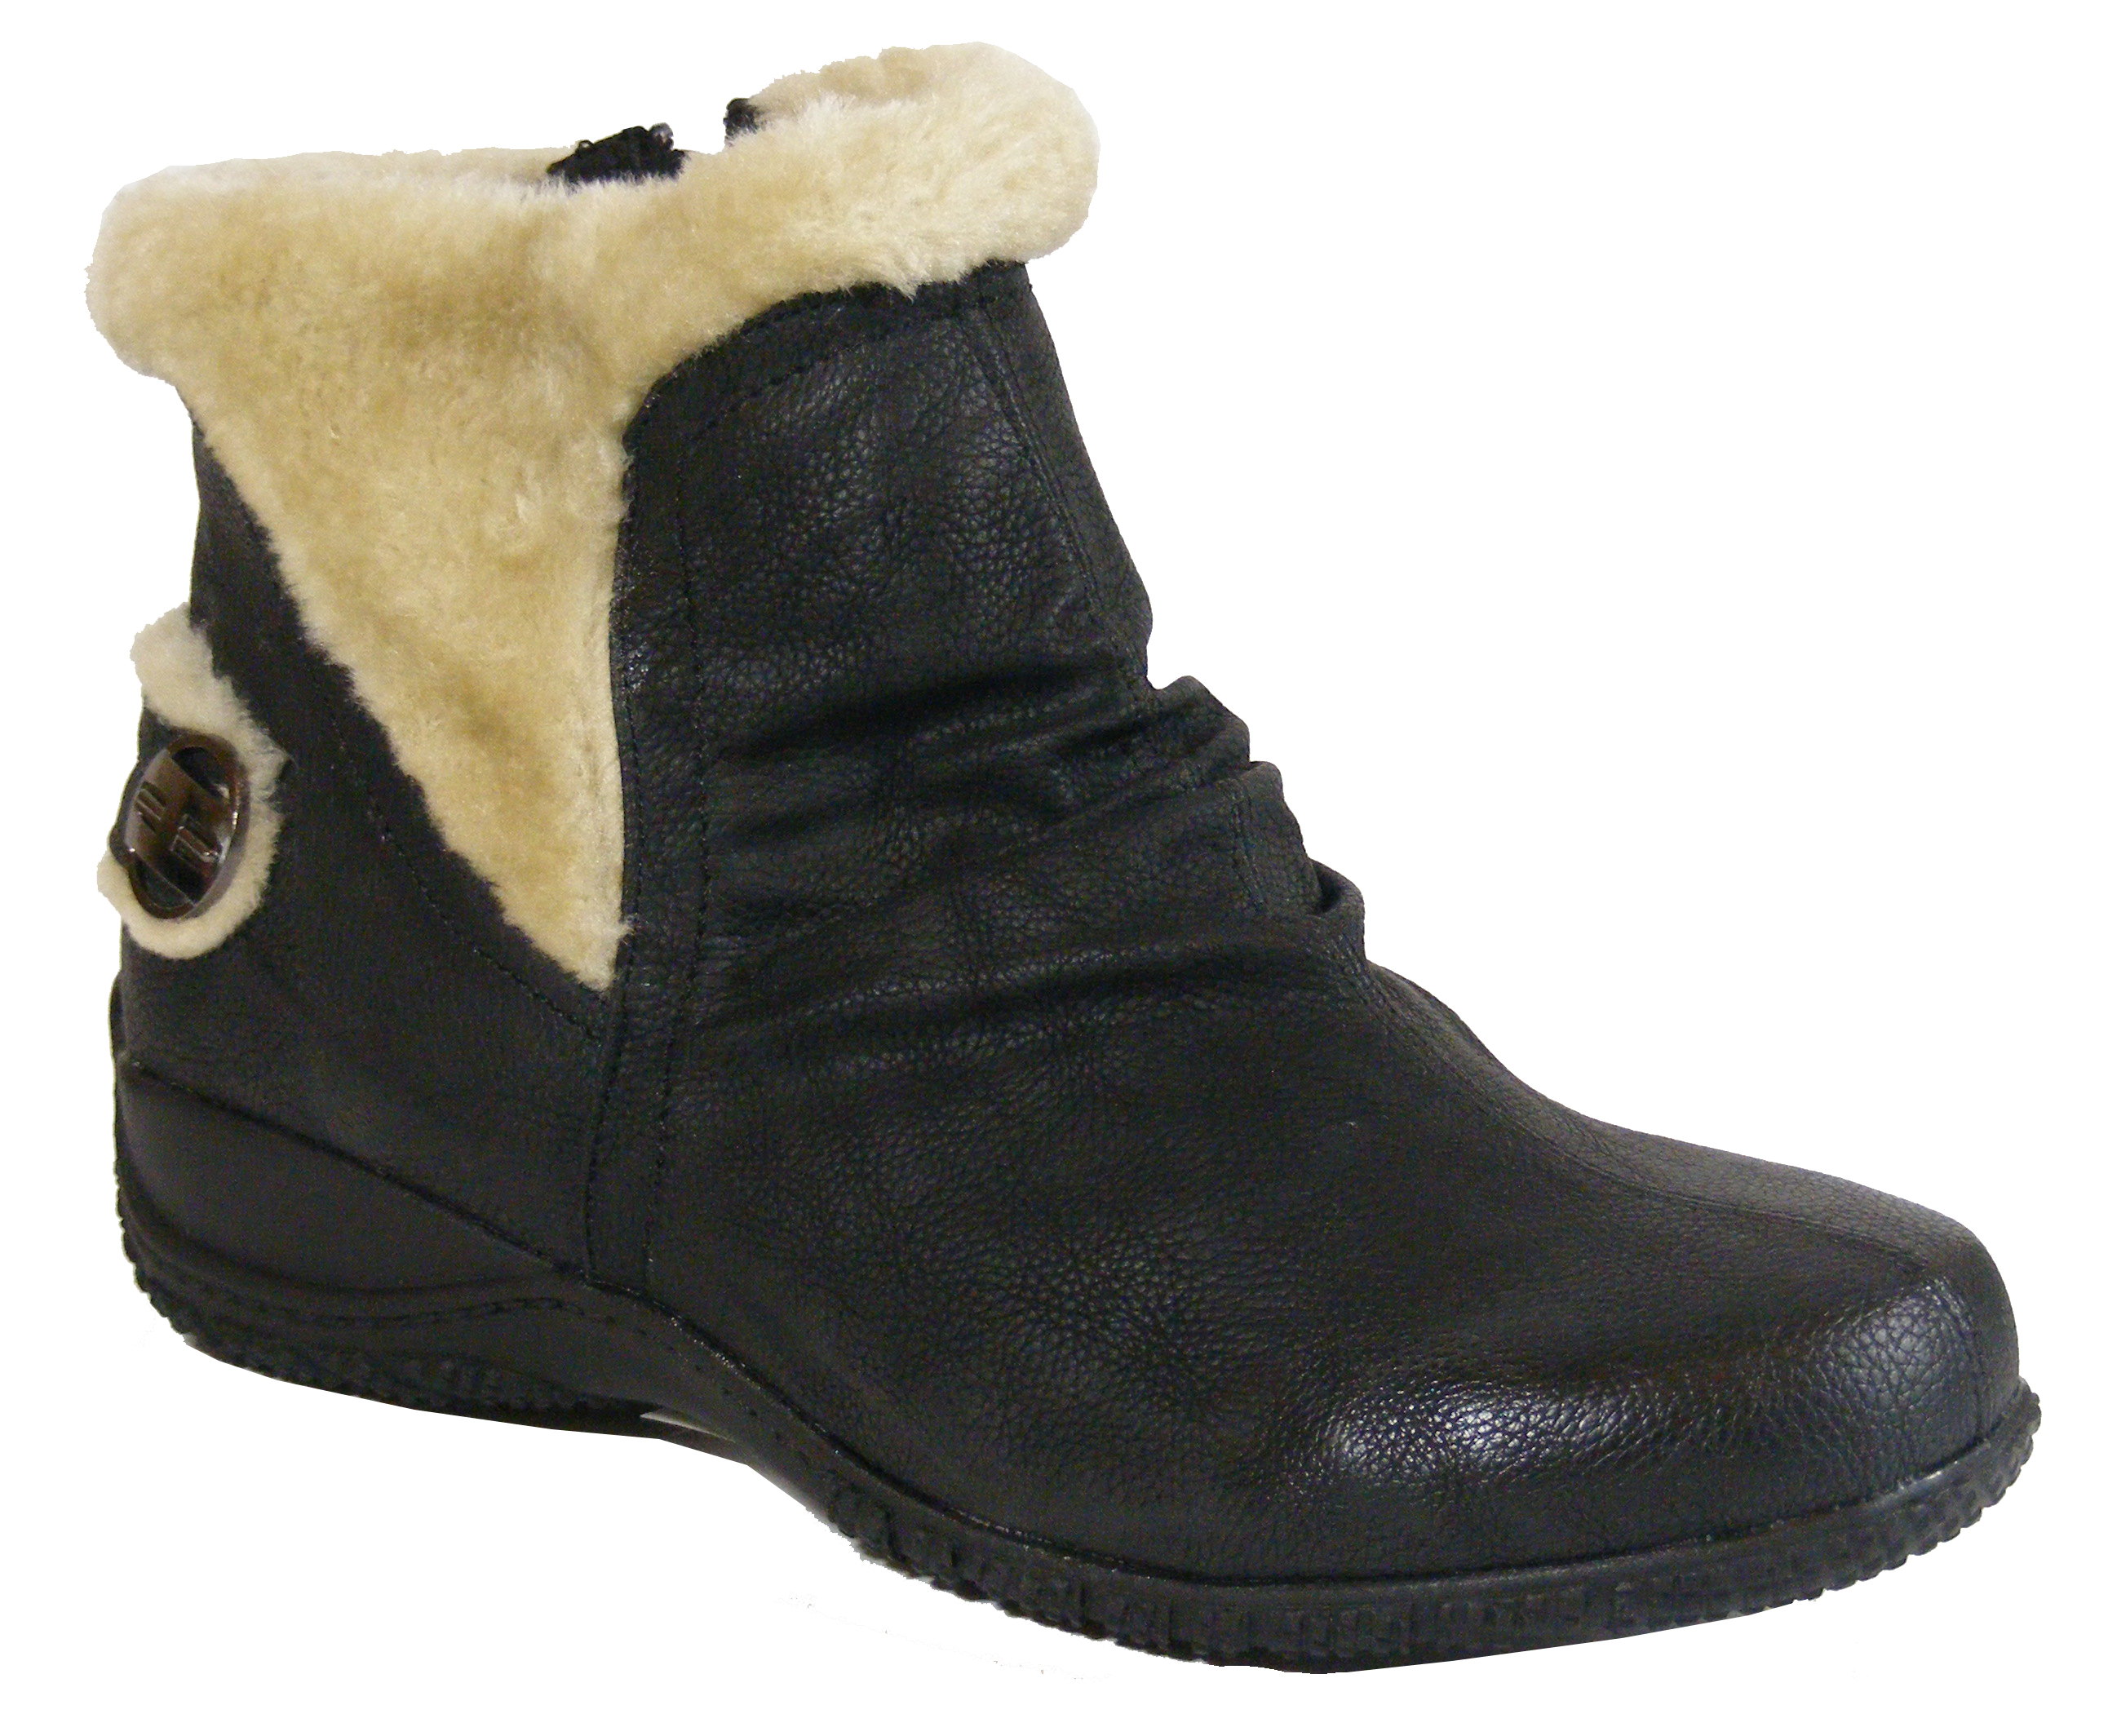 Ladies TRUEFORM Black U0026 Beige Warm Fur Lined Womens Flat Ankle Work Winter Boots | EBay